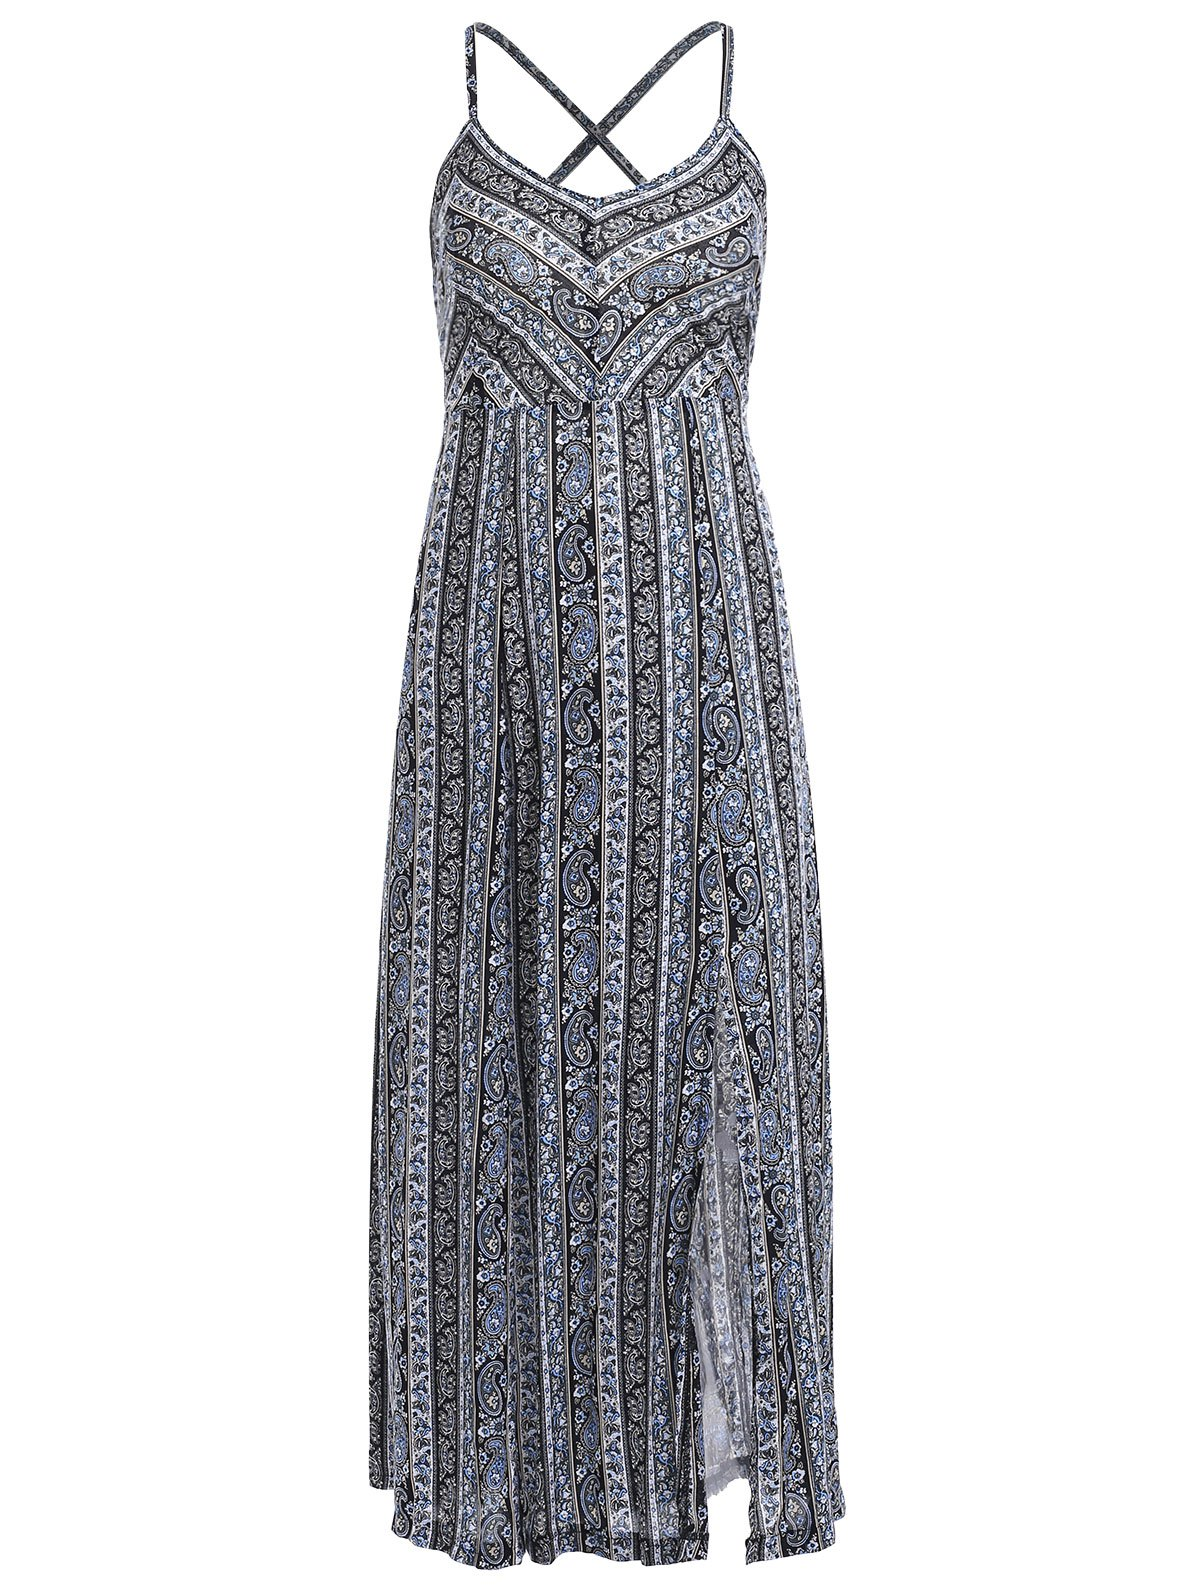 Tribal Print Lace Up Slit Maxi Dress - COLORMIX ONE SIZE